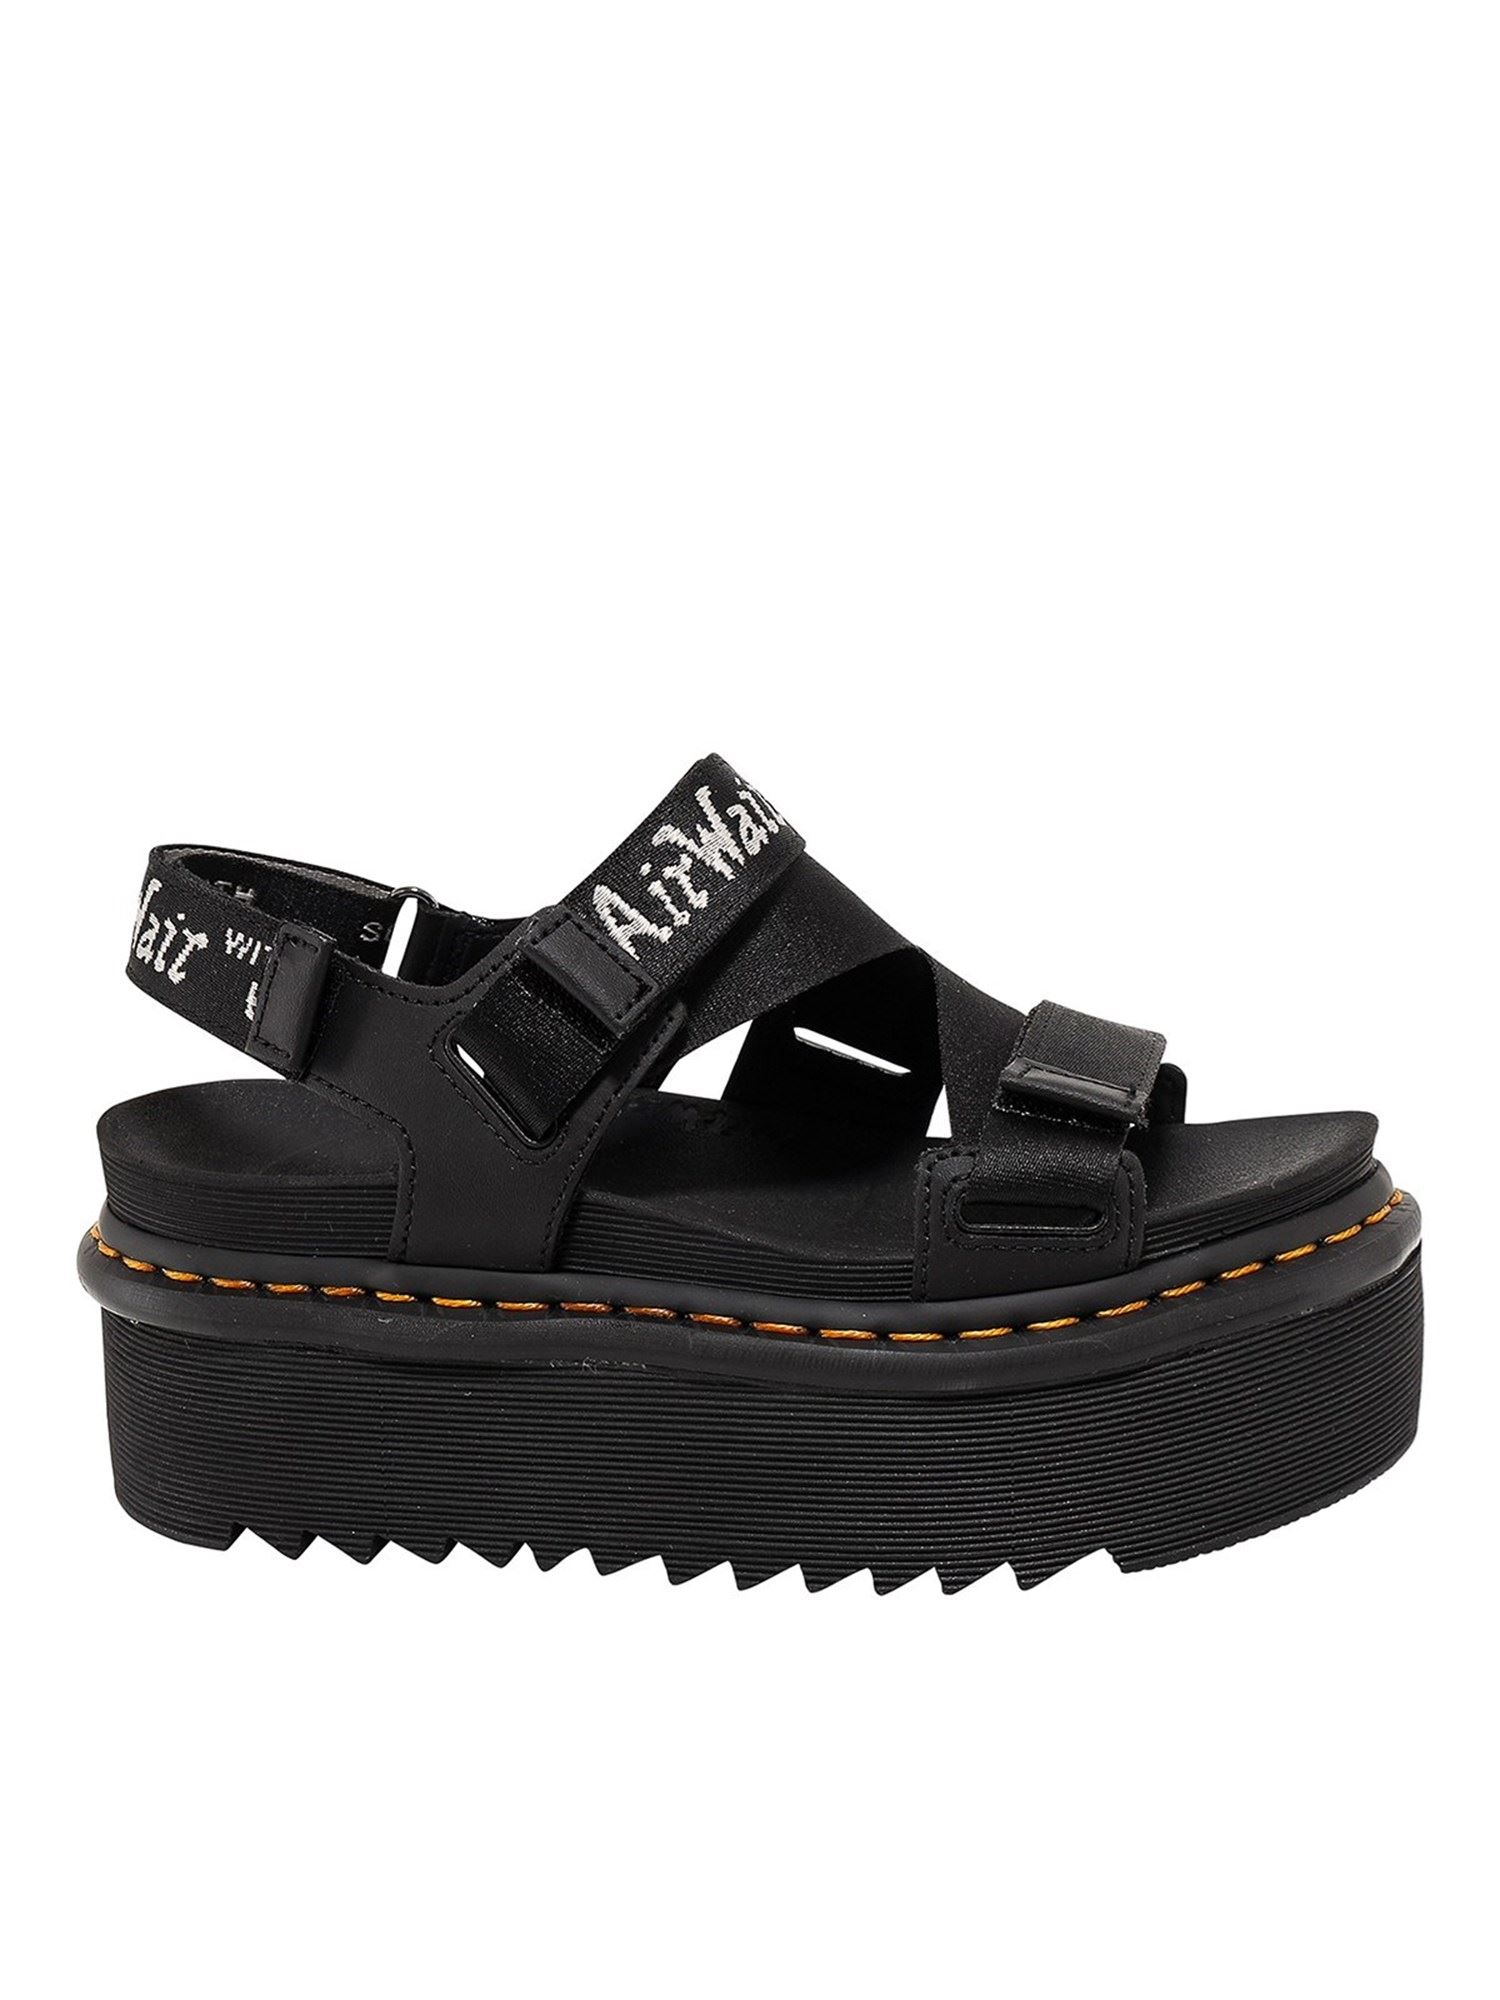 Dr. Martens NYLON SANDALS WITH STRUCTURED SOLE IN BLACK